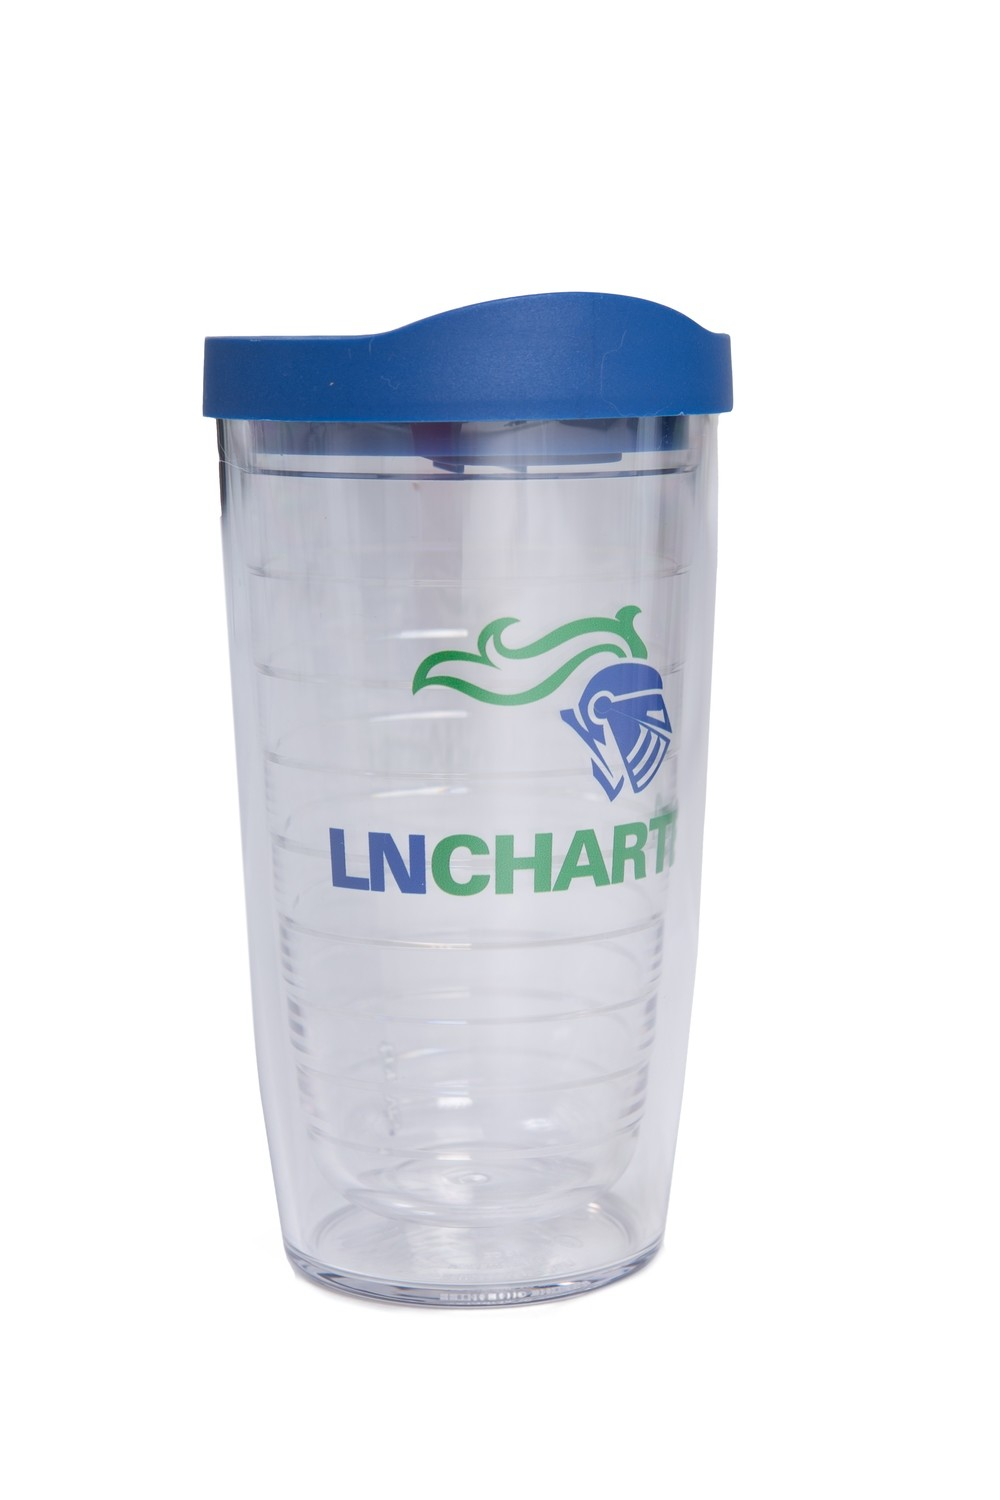 LNC Tervis Tumbler w/ lid          CURRENTLY SOLD OUT